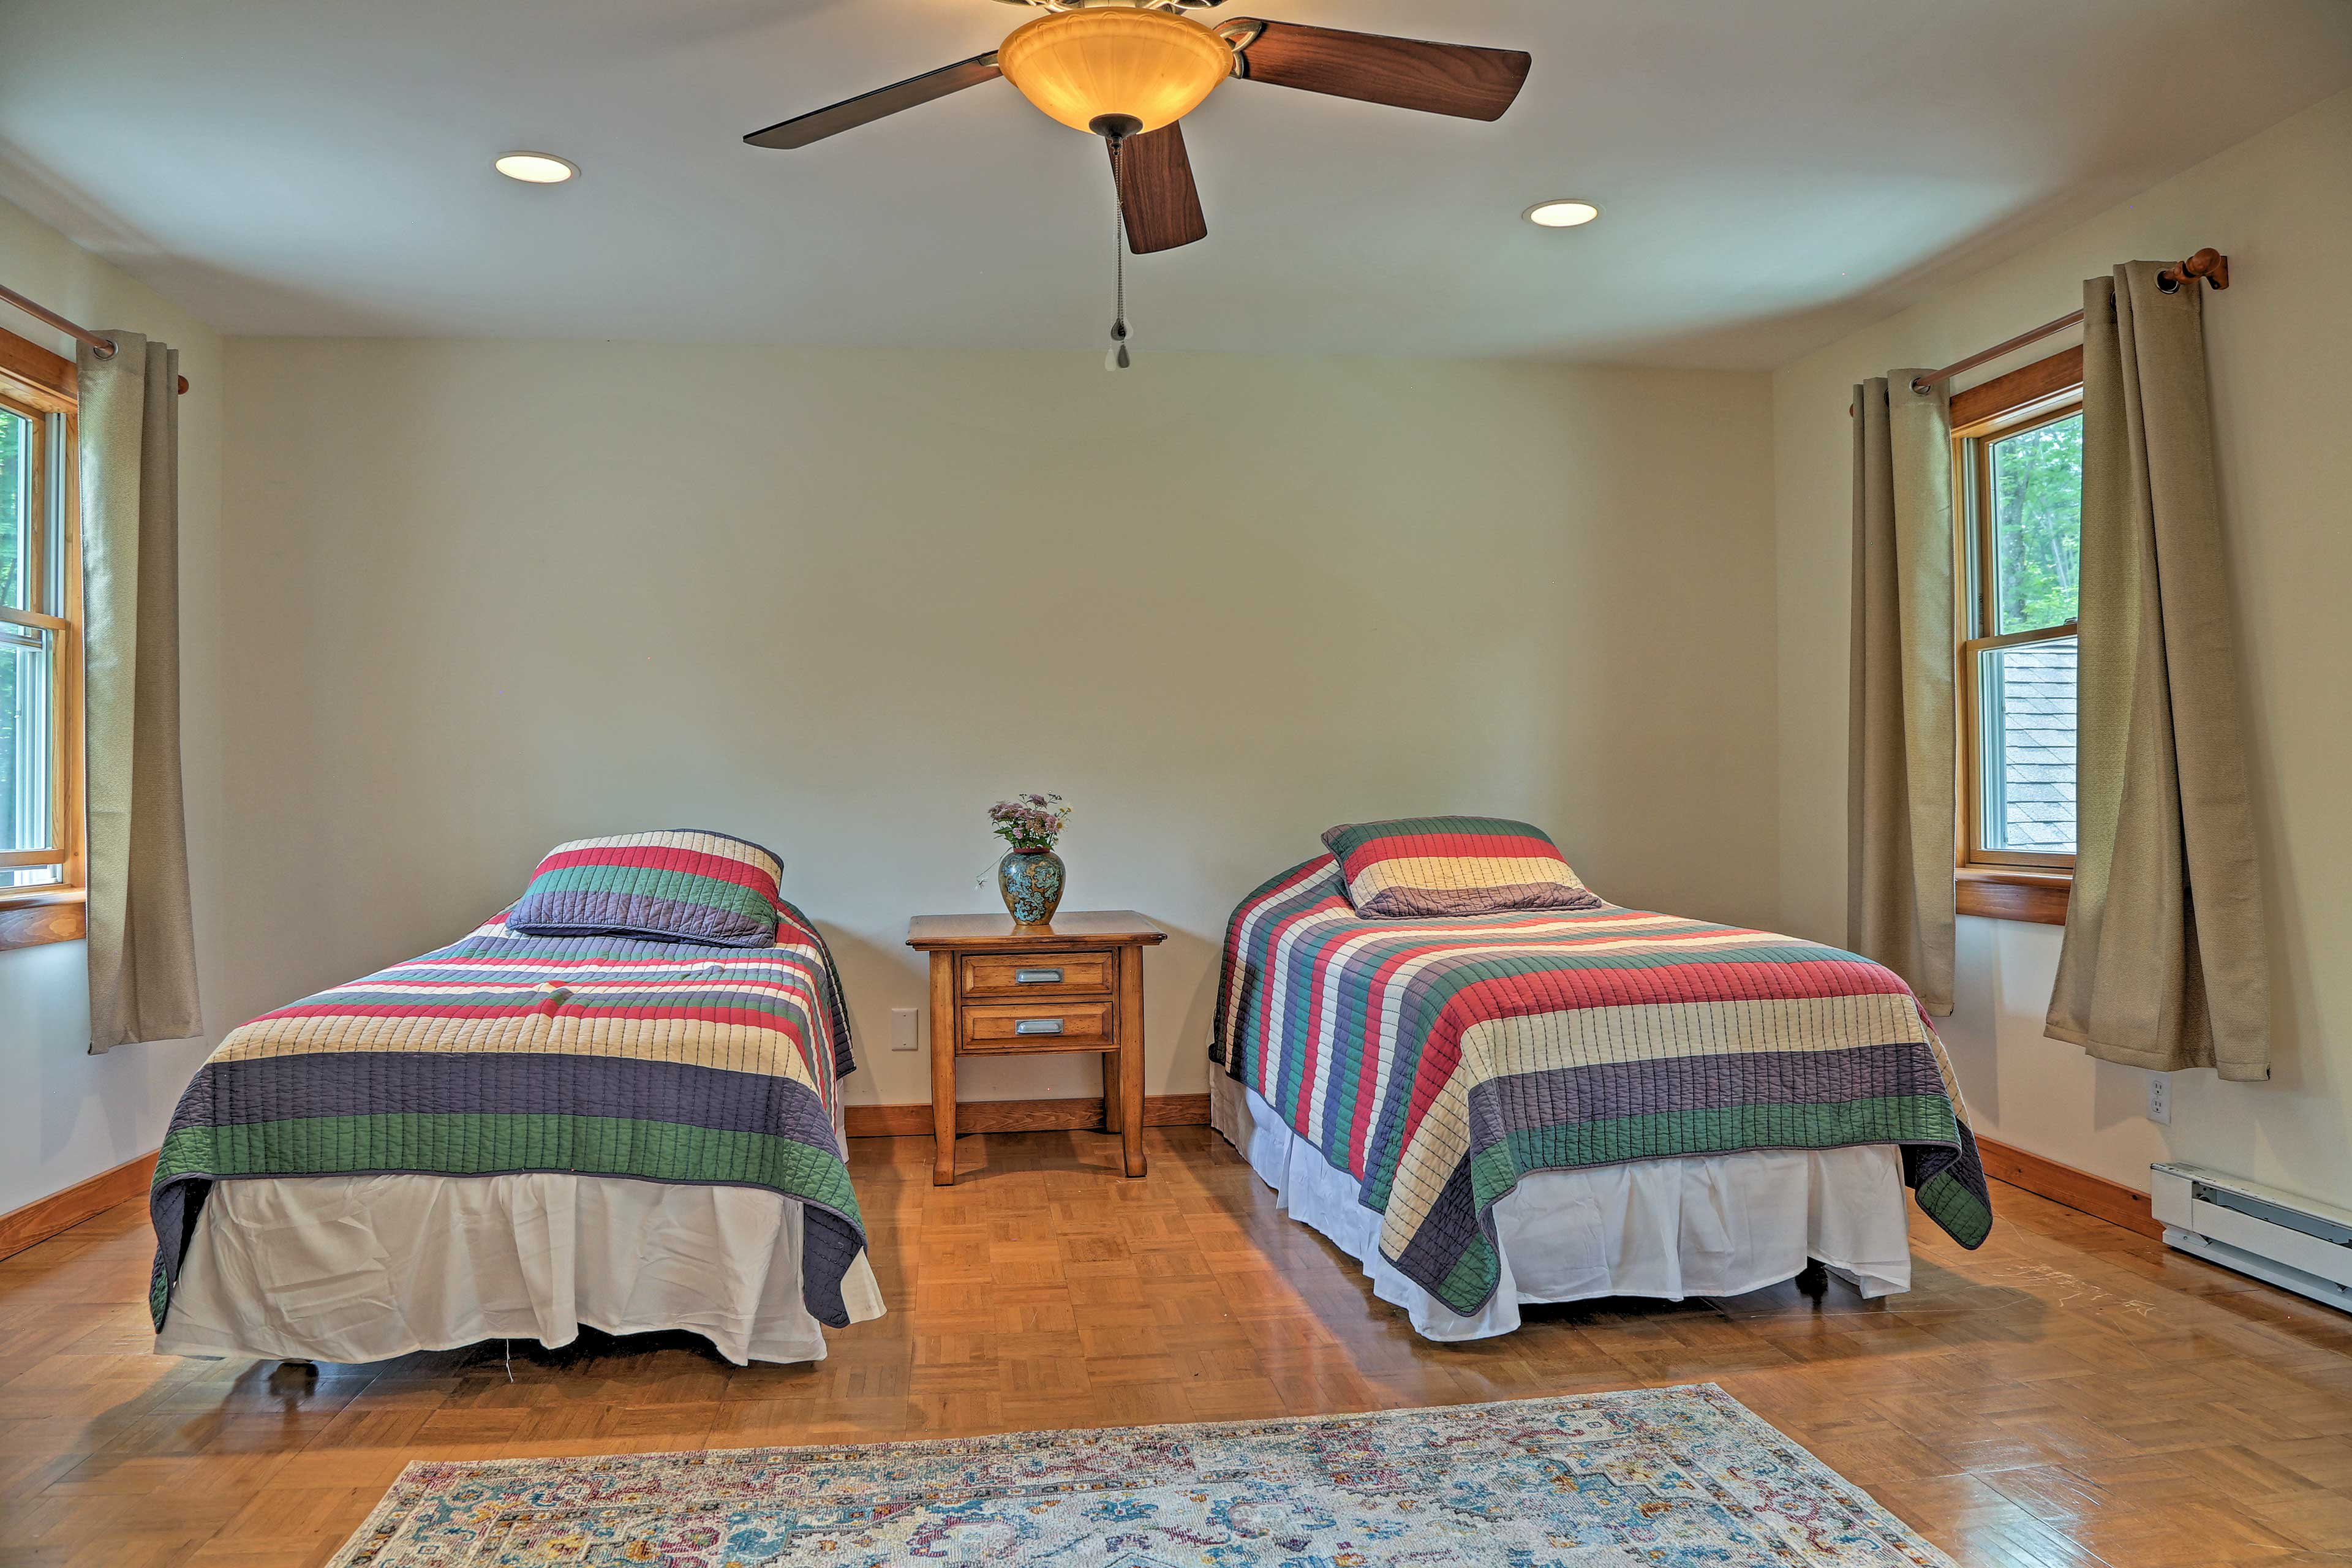 The kids will love sharing the third bedroom!